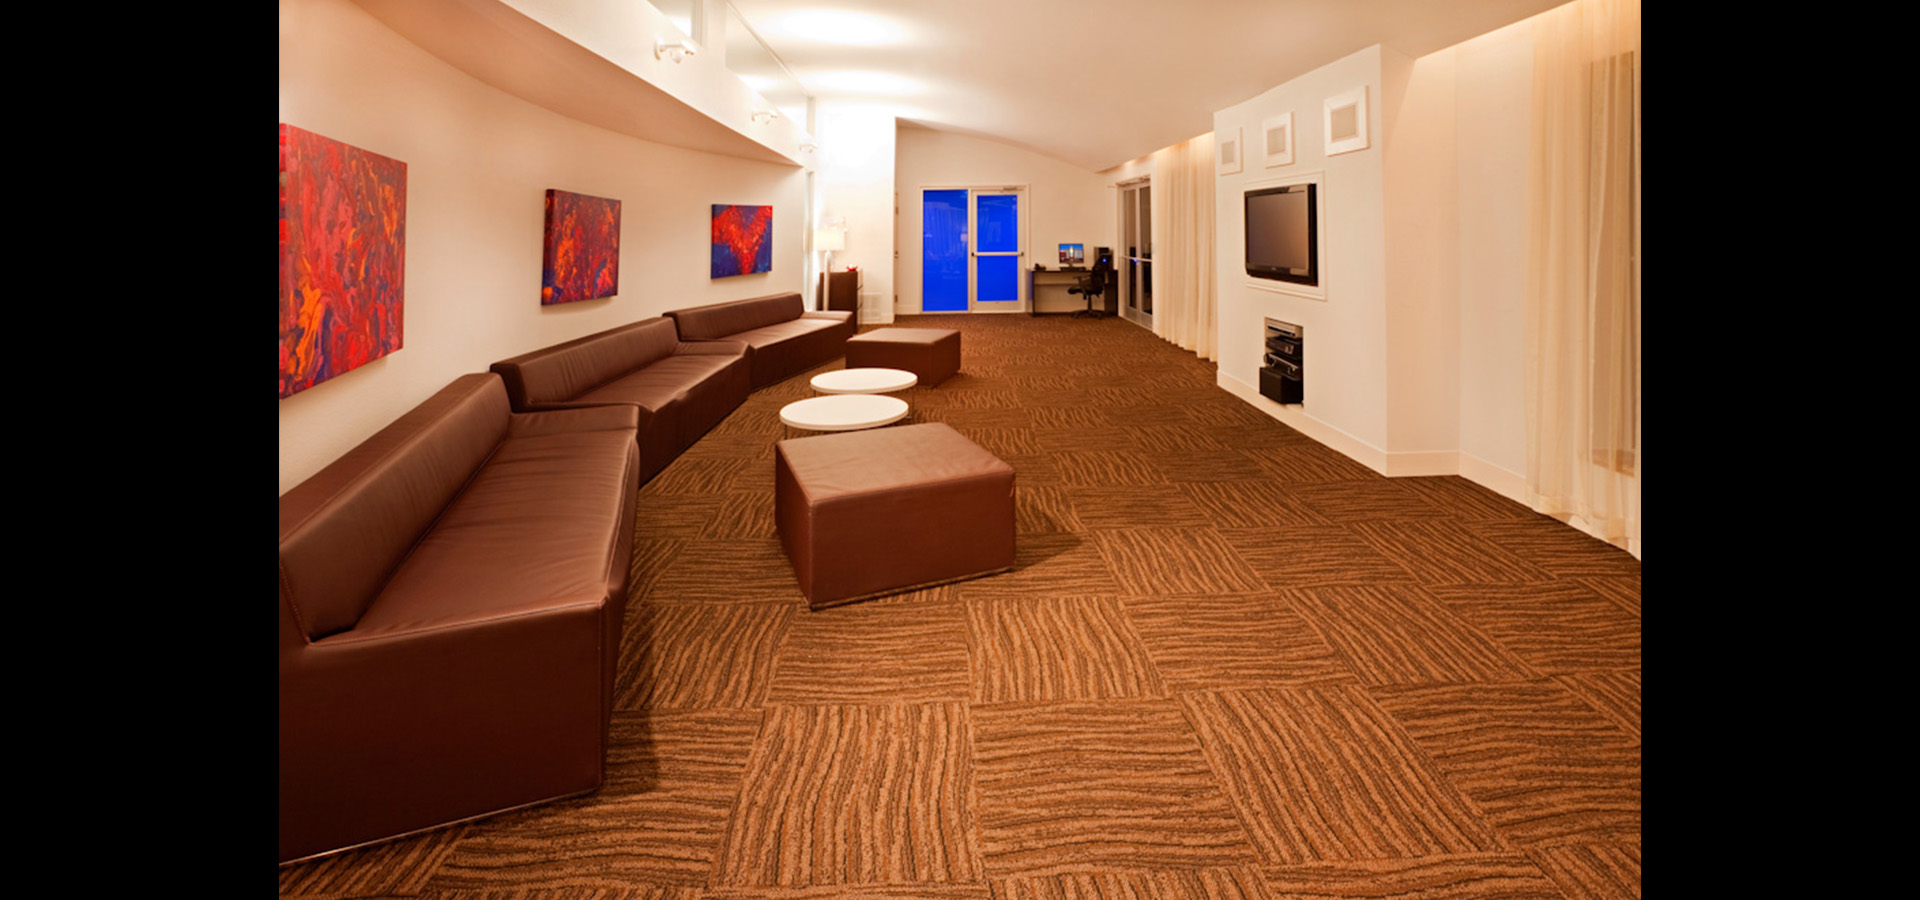 Candlewood Suites DFW South_06